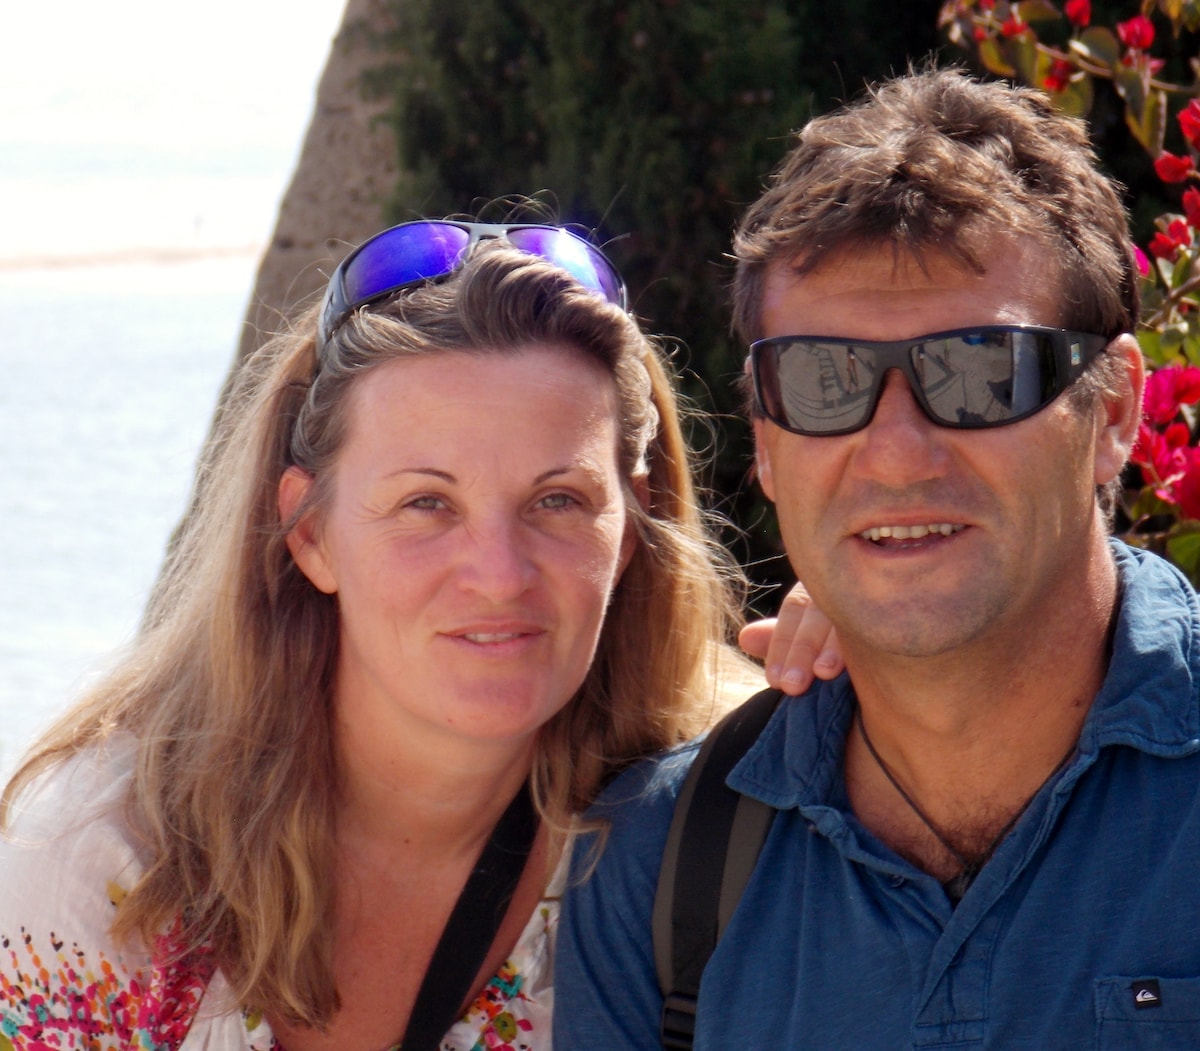 JEAN-MARC Et CARINE from Anglet